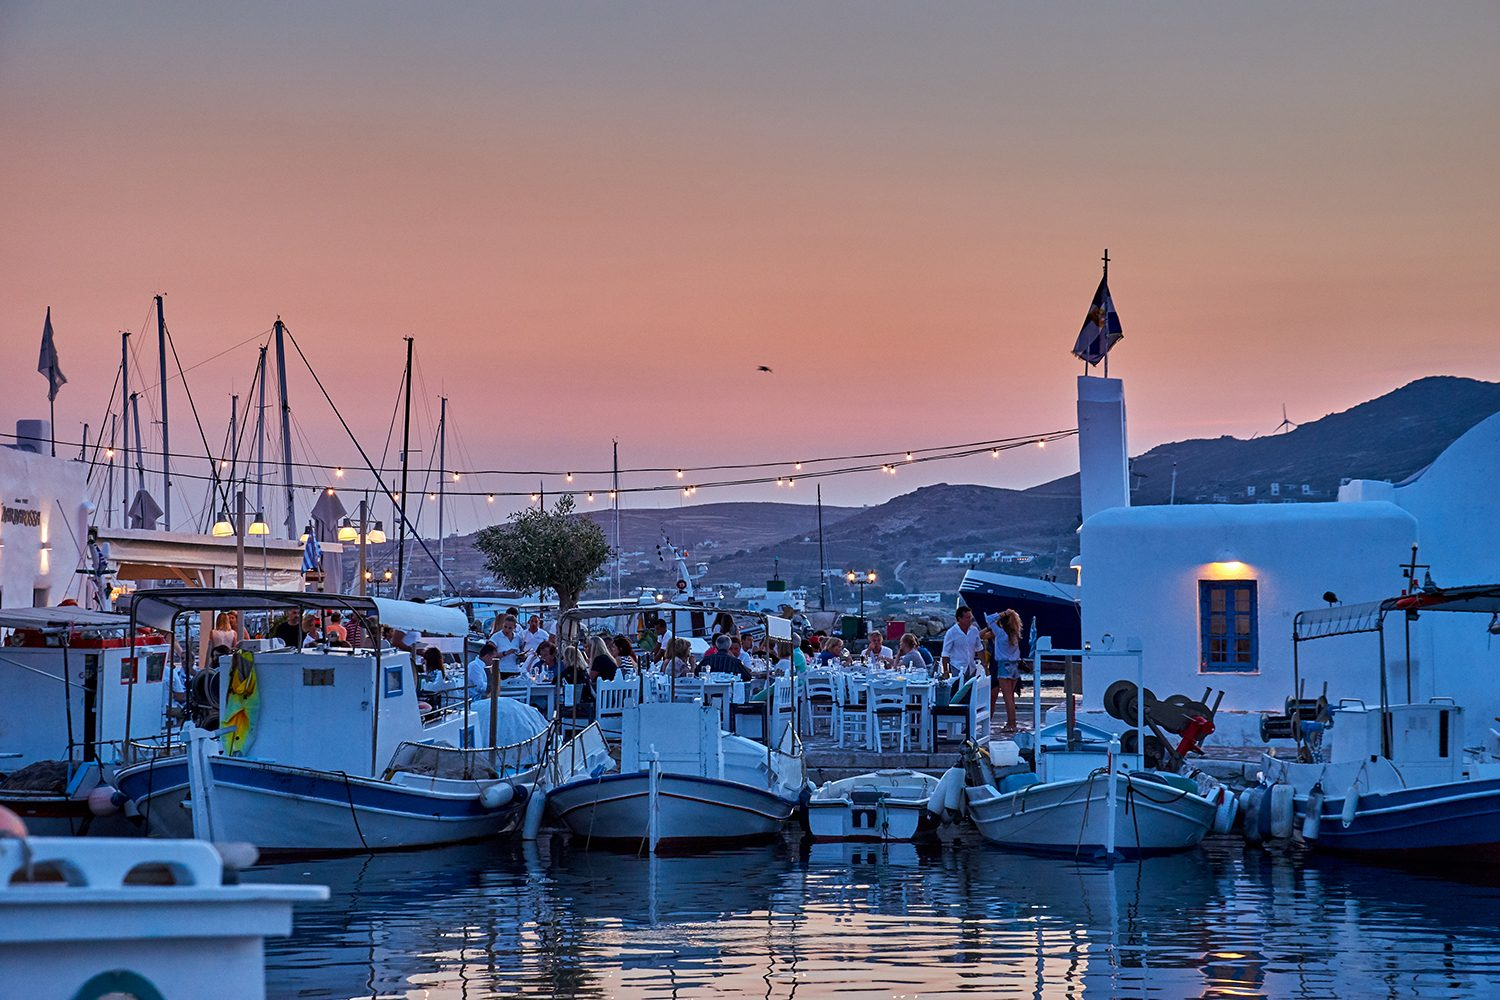 beautiful sunset skyline view from yacht of Paros Island Greece town and marina Scenery